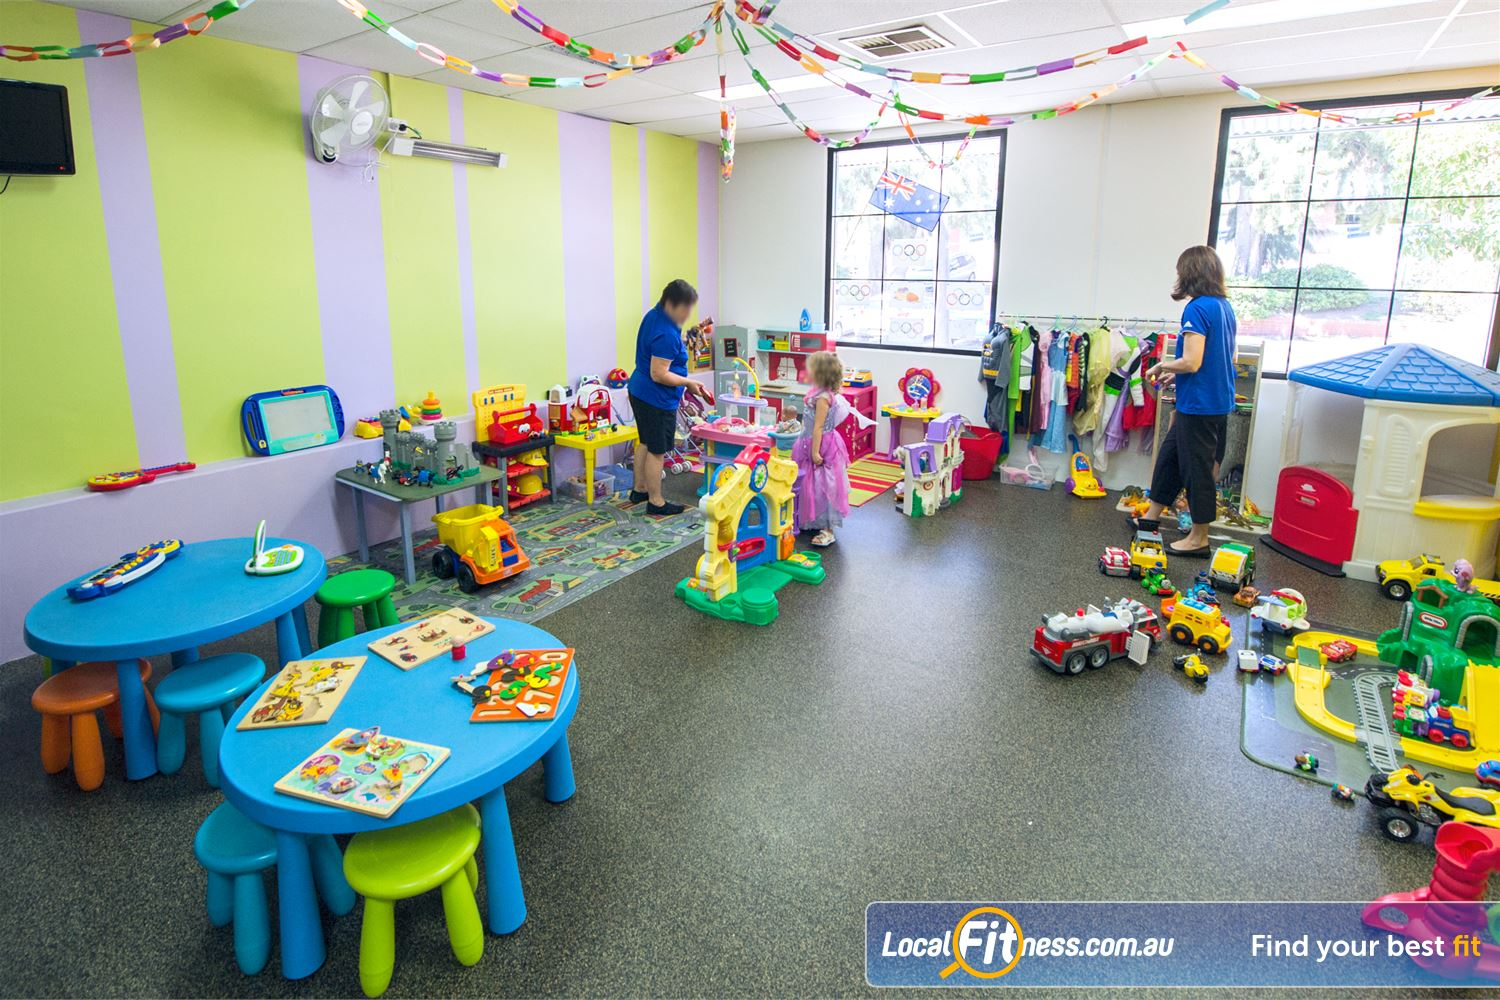 Goodlife Health Clubs Mount Lawley Goodlife Mount Lawley provides on-site child minding services